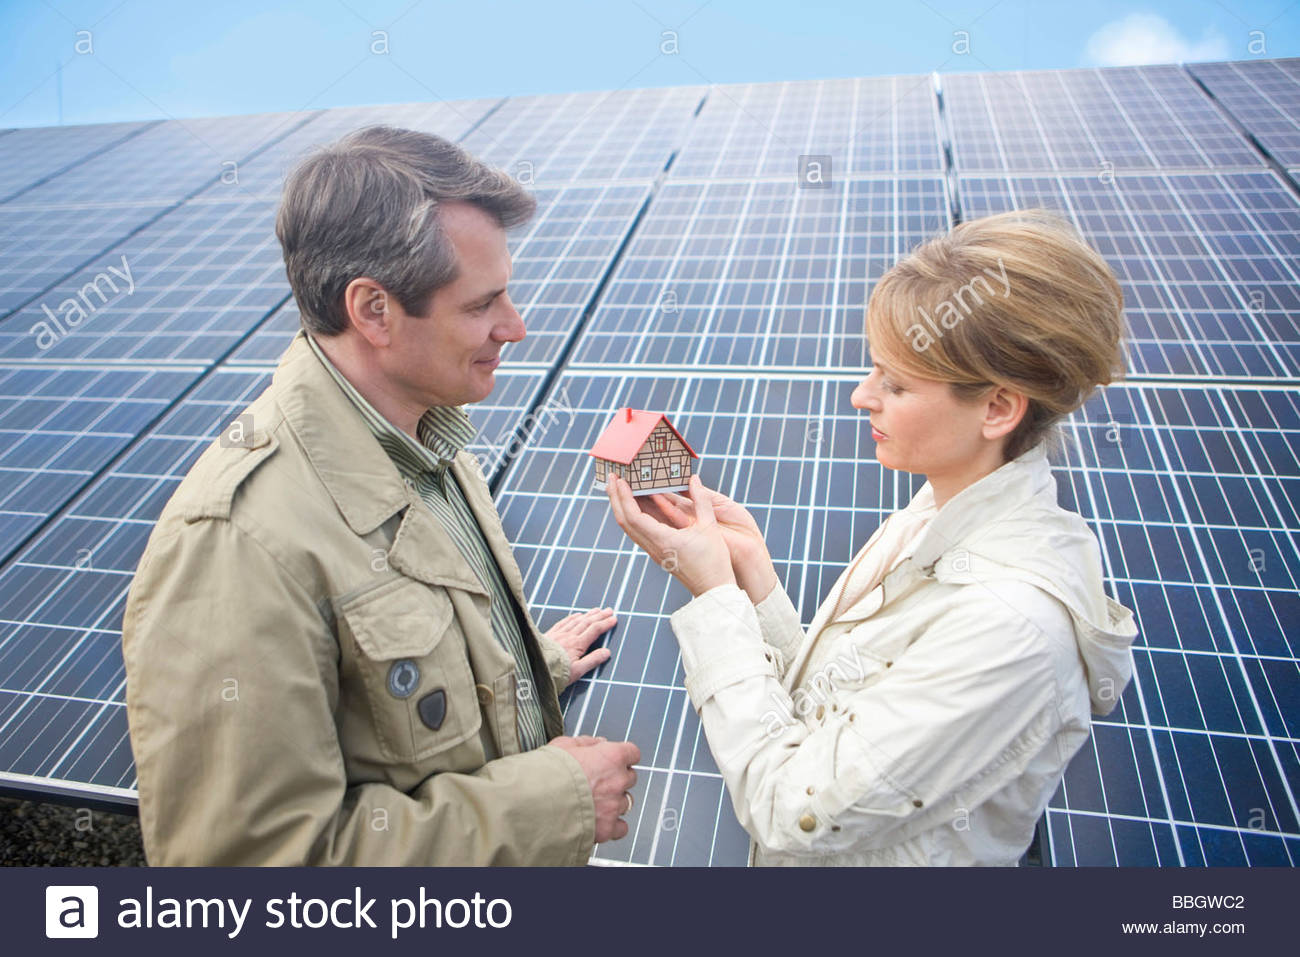 Mature couple standing front solar panels holding miniature house Munich, Bavaria, Germany - Stock Image